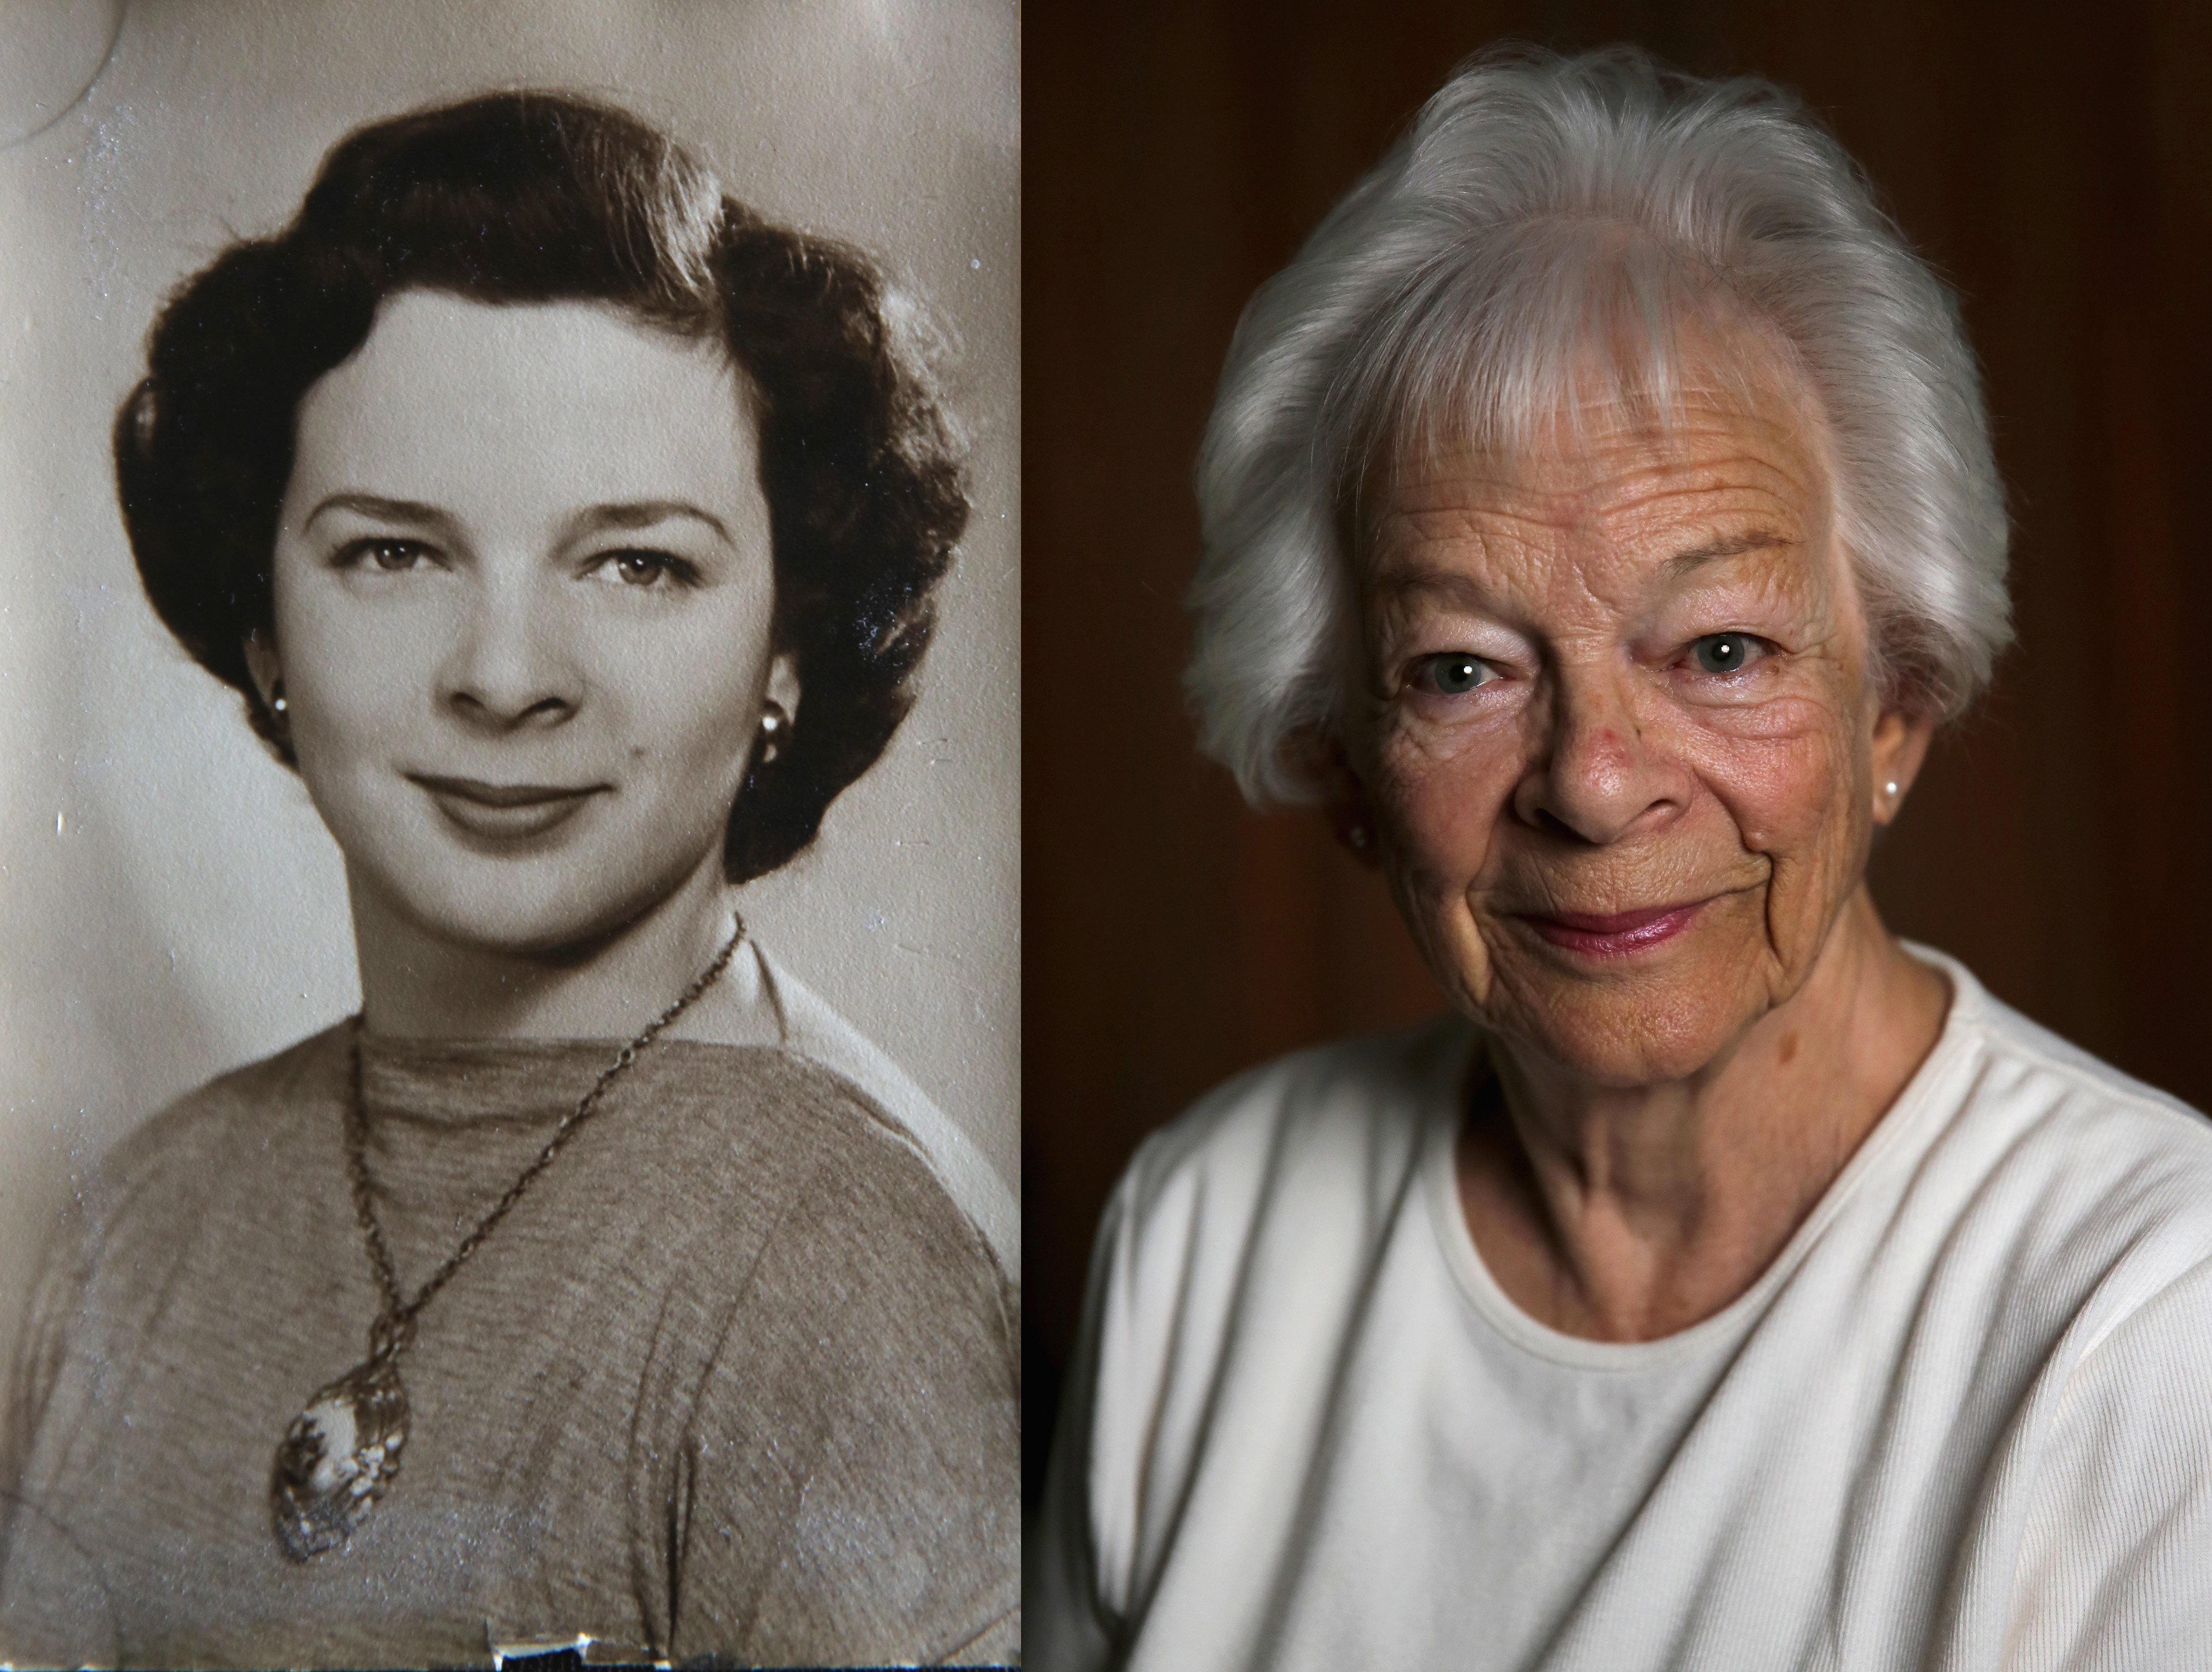 WWII civilian internee Mildred Tunbridge photographed in the 1940's on her arrival in Britain and at her home, age 90, on Aug. 6, 2015 in London.